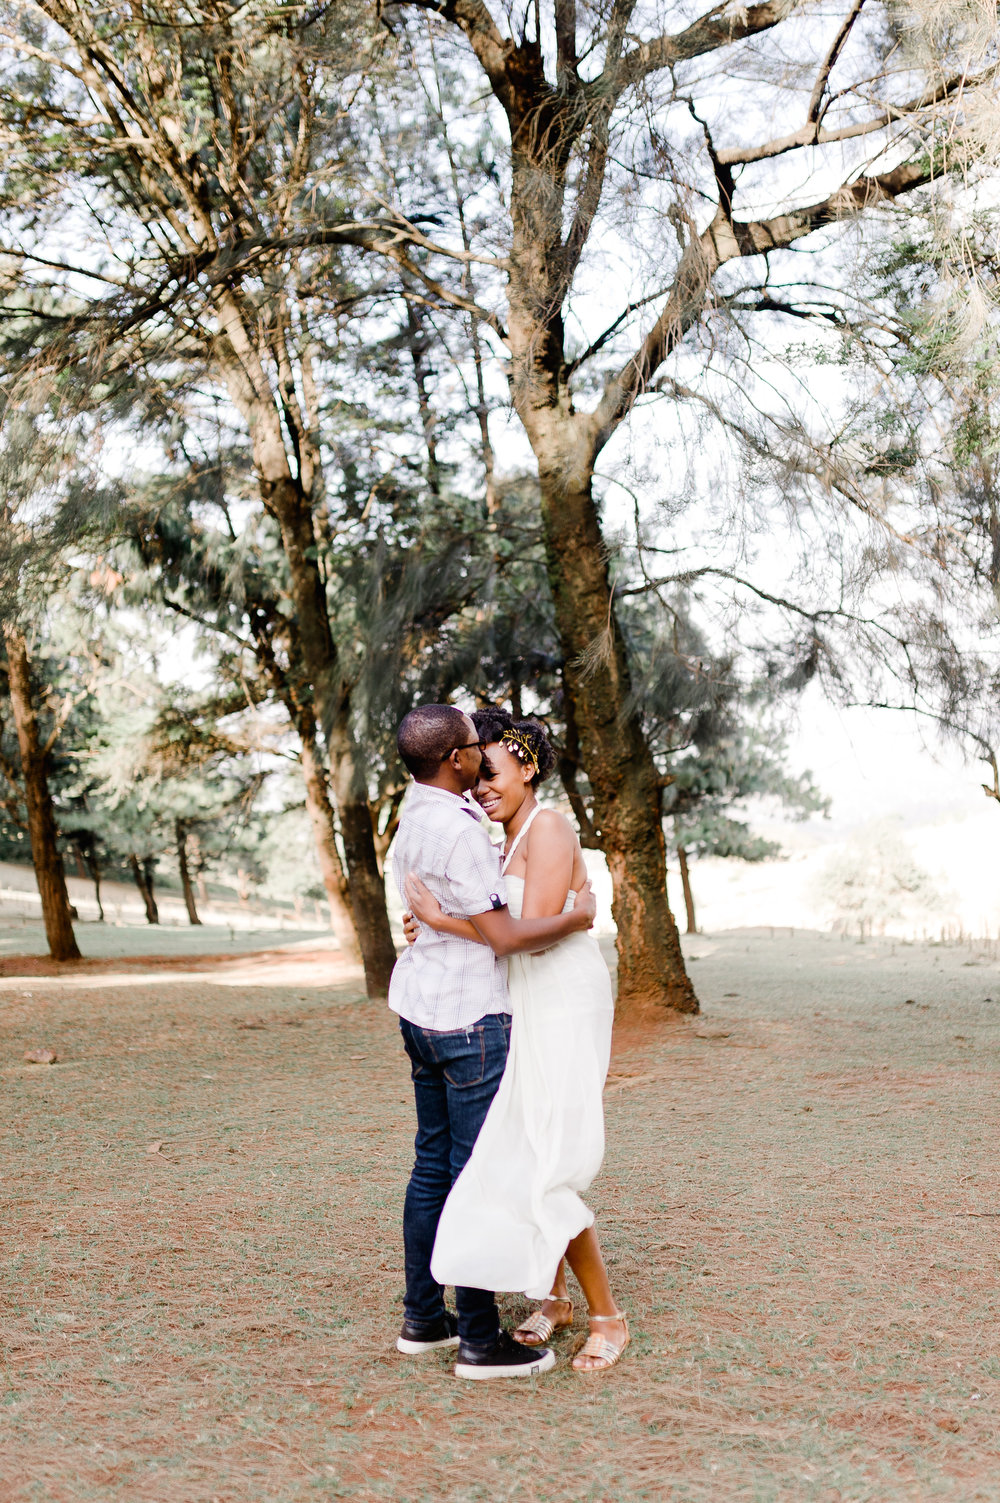 Anna-Hari-Photography-Kenyan-Wedding-Photographer-Ngong-Hills-Elopement-Kenya-8.jpg